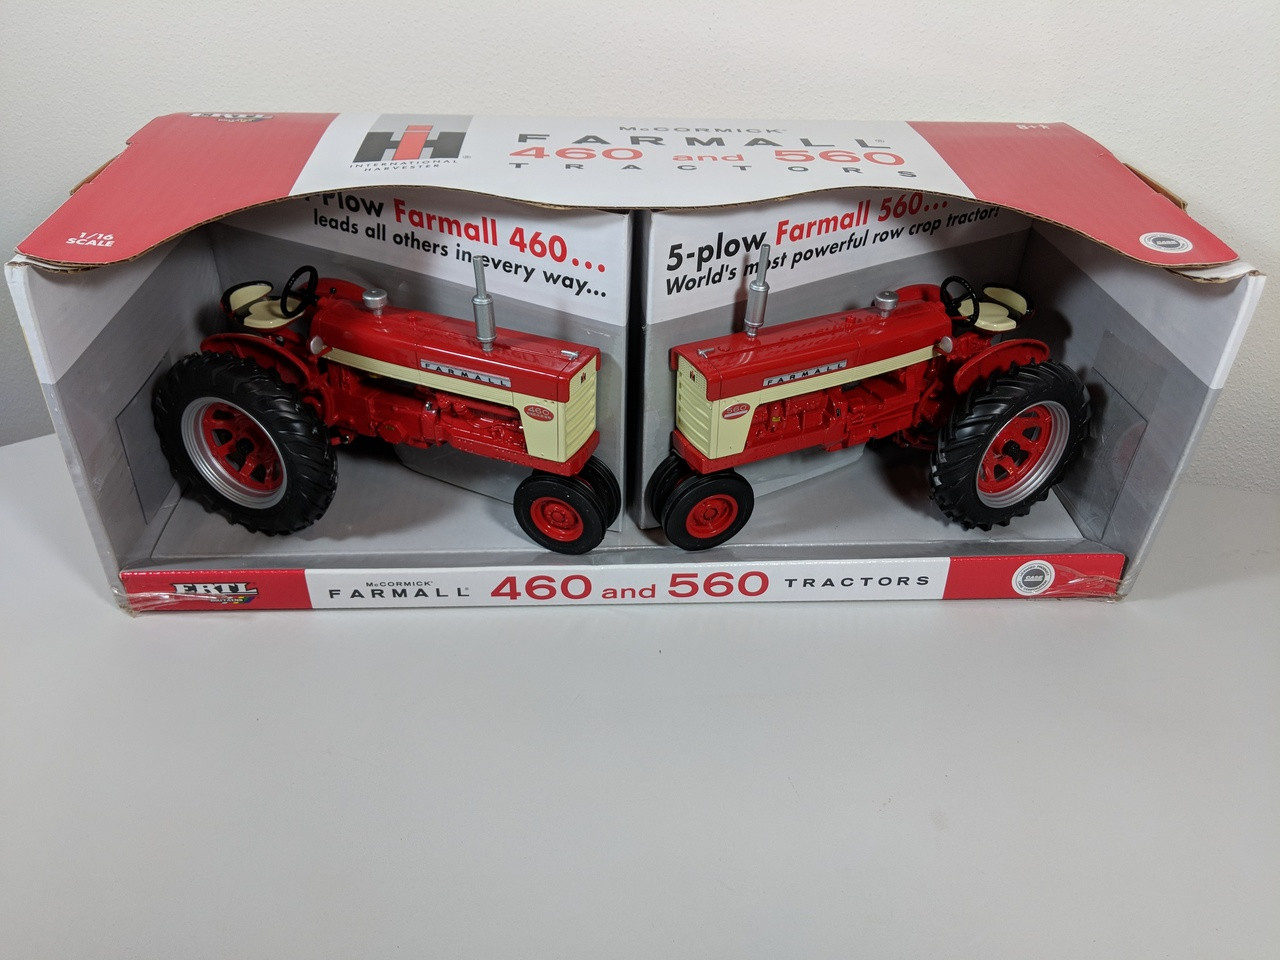 medium resolution of 1 16 farmall 460 and 560 2 piece tractor set collector edition set also 806 farmall tractor wiring harness in addition 560 farmall